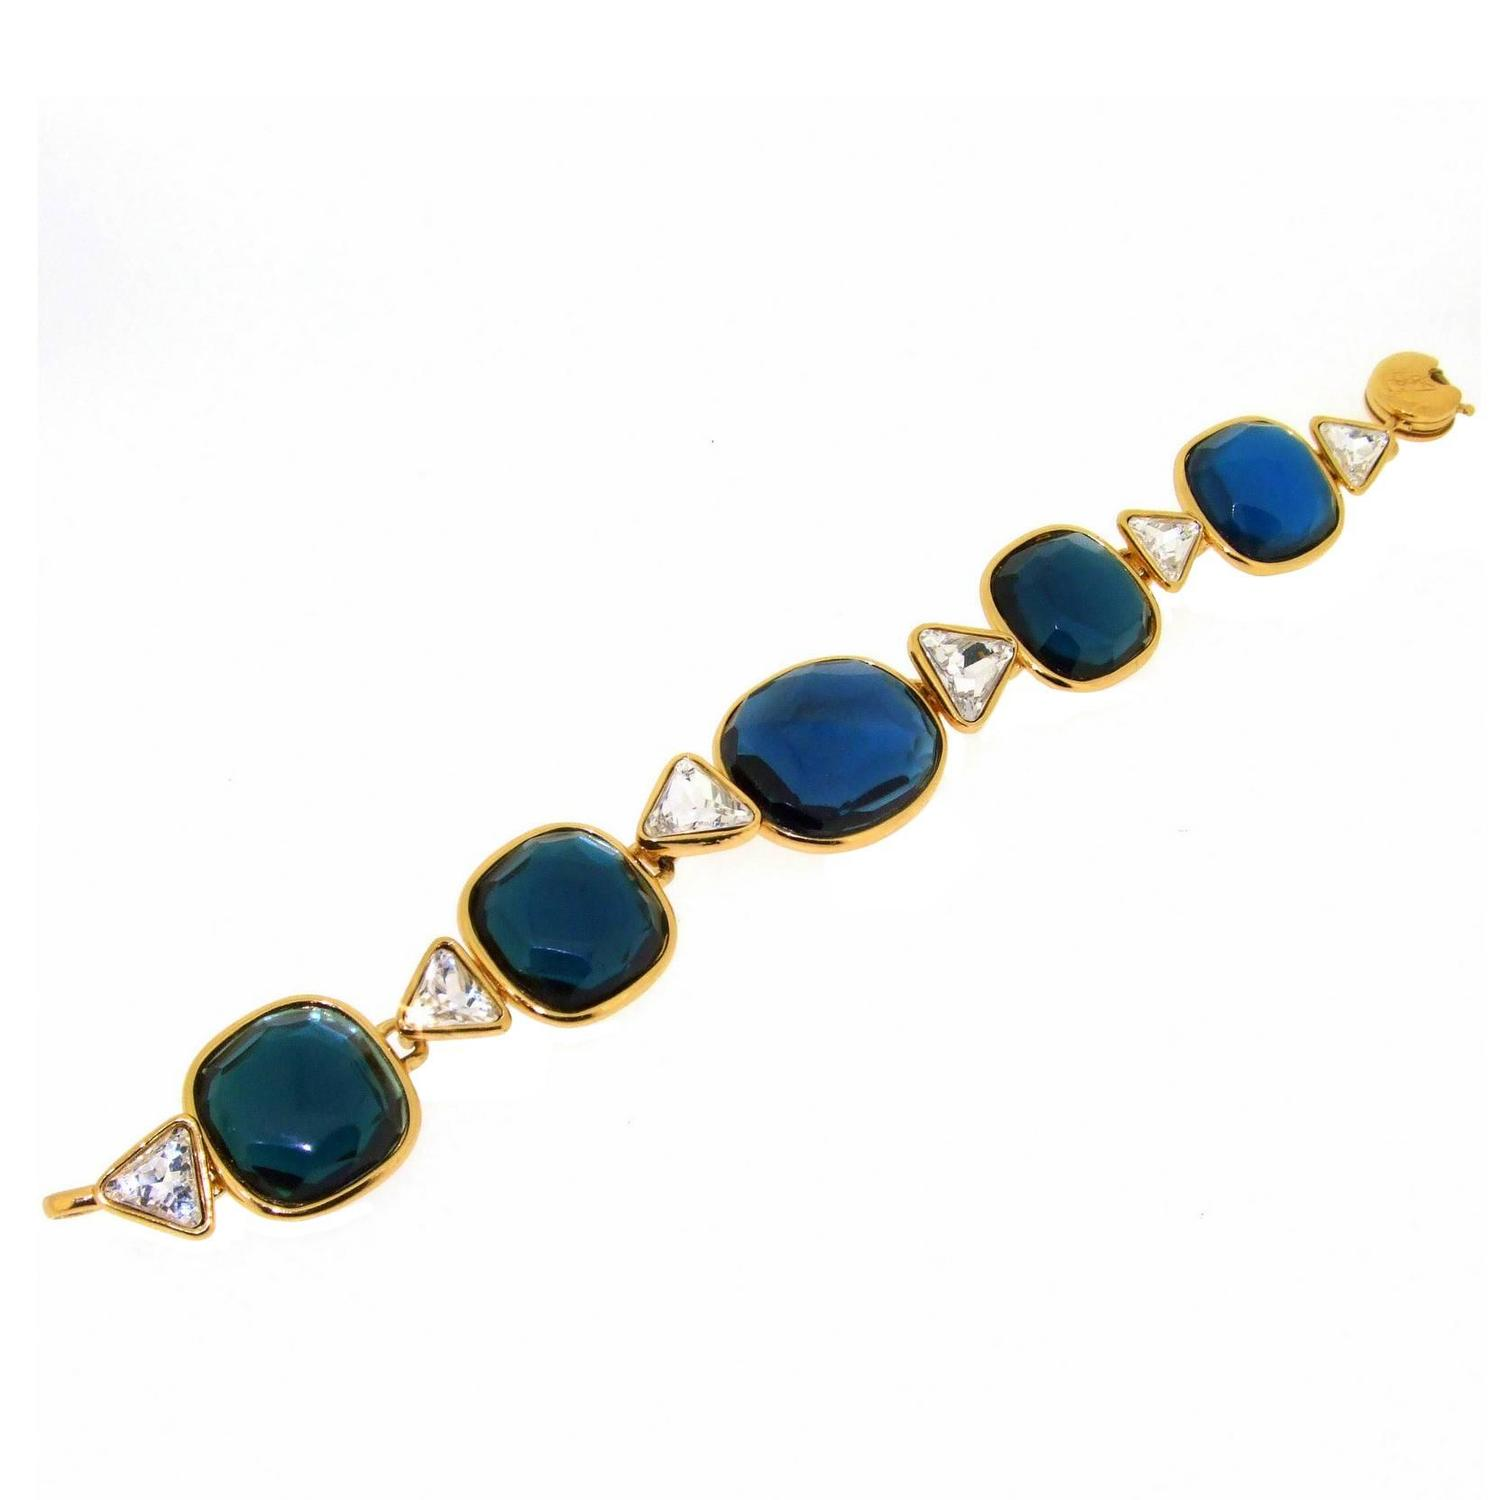 Yves saint laurent blue bracelet ysl for sale at 1stdibs - Bracelet yves saint laurent ...